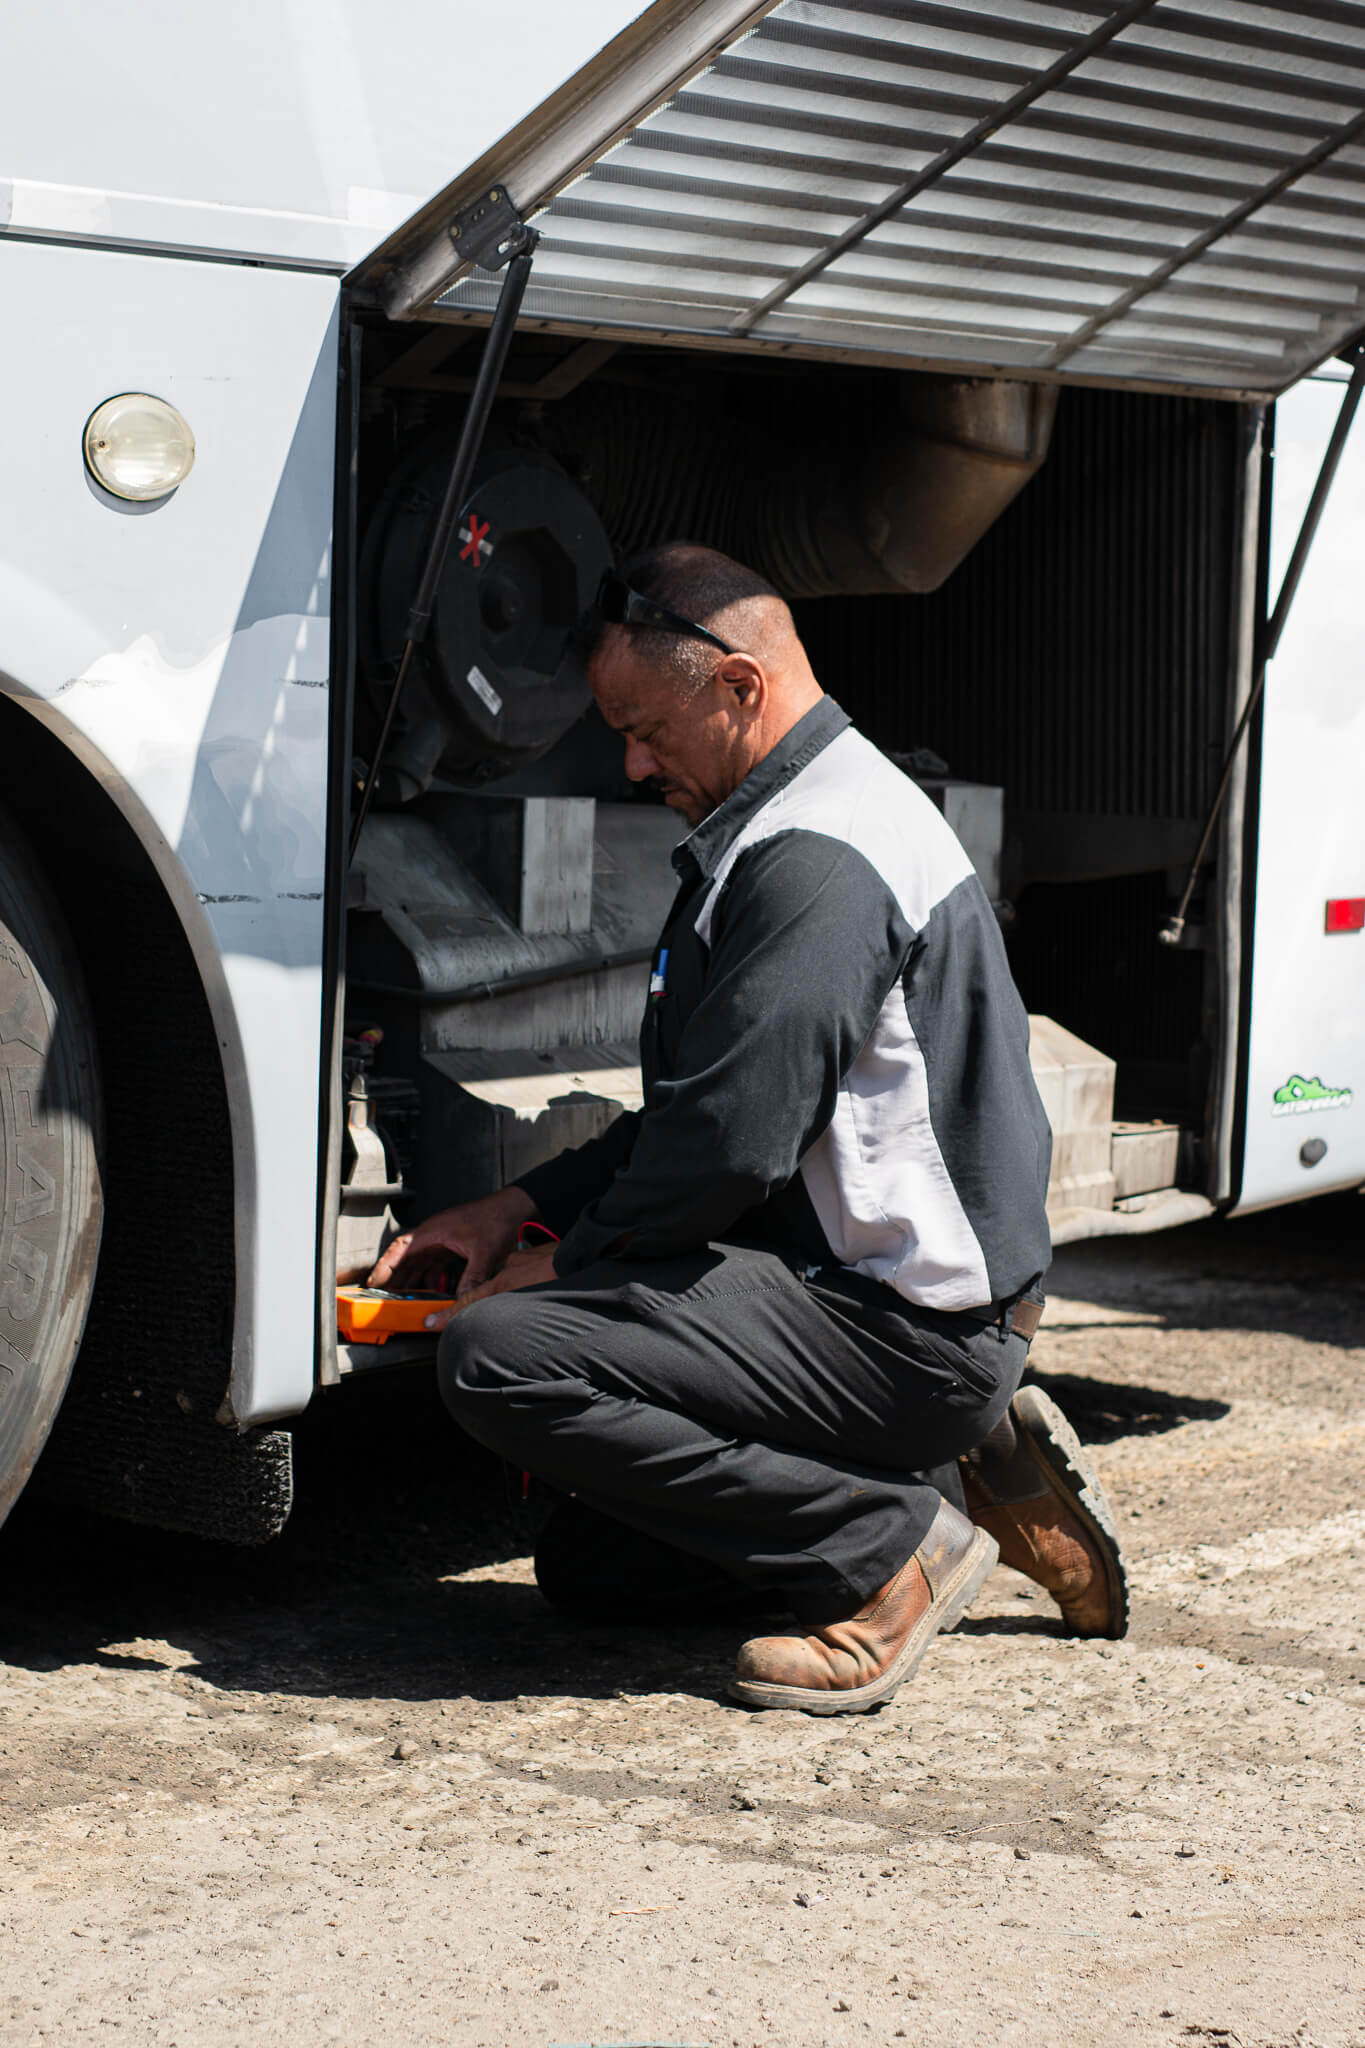 An image of a Pegasus Transit mechanic doing a diagnosis test on one of their charter buses.